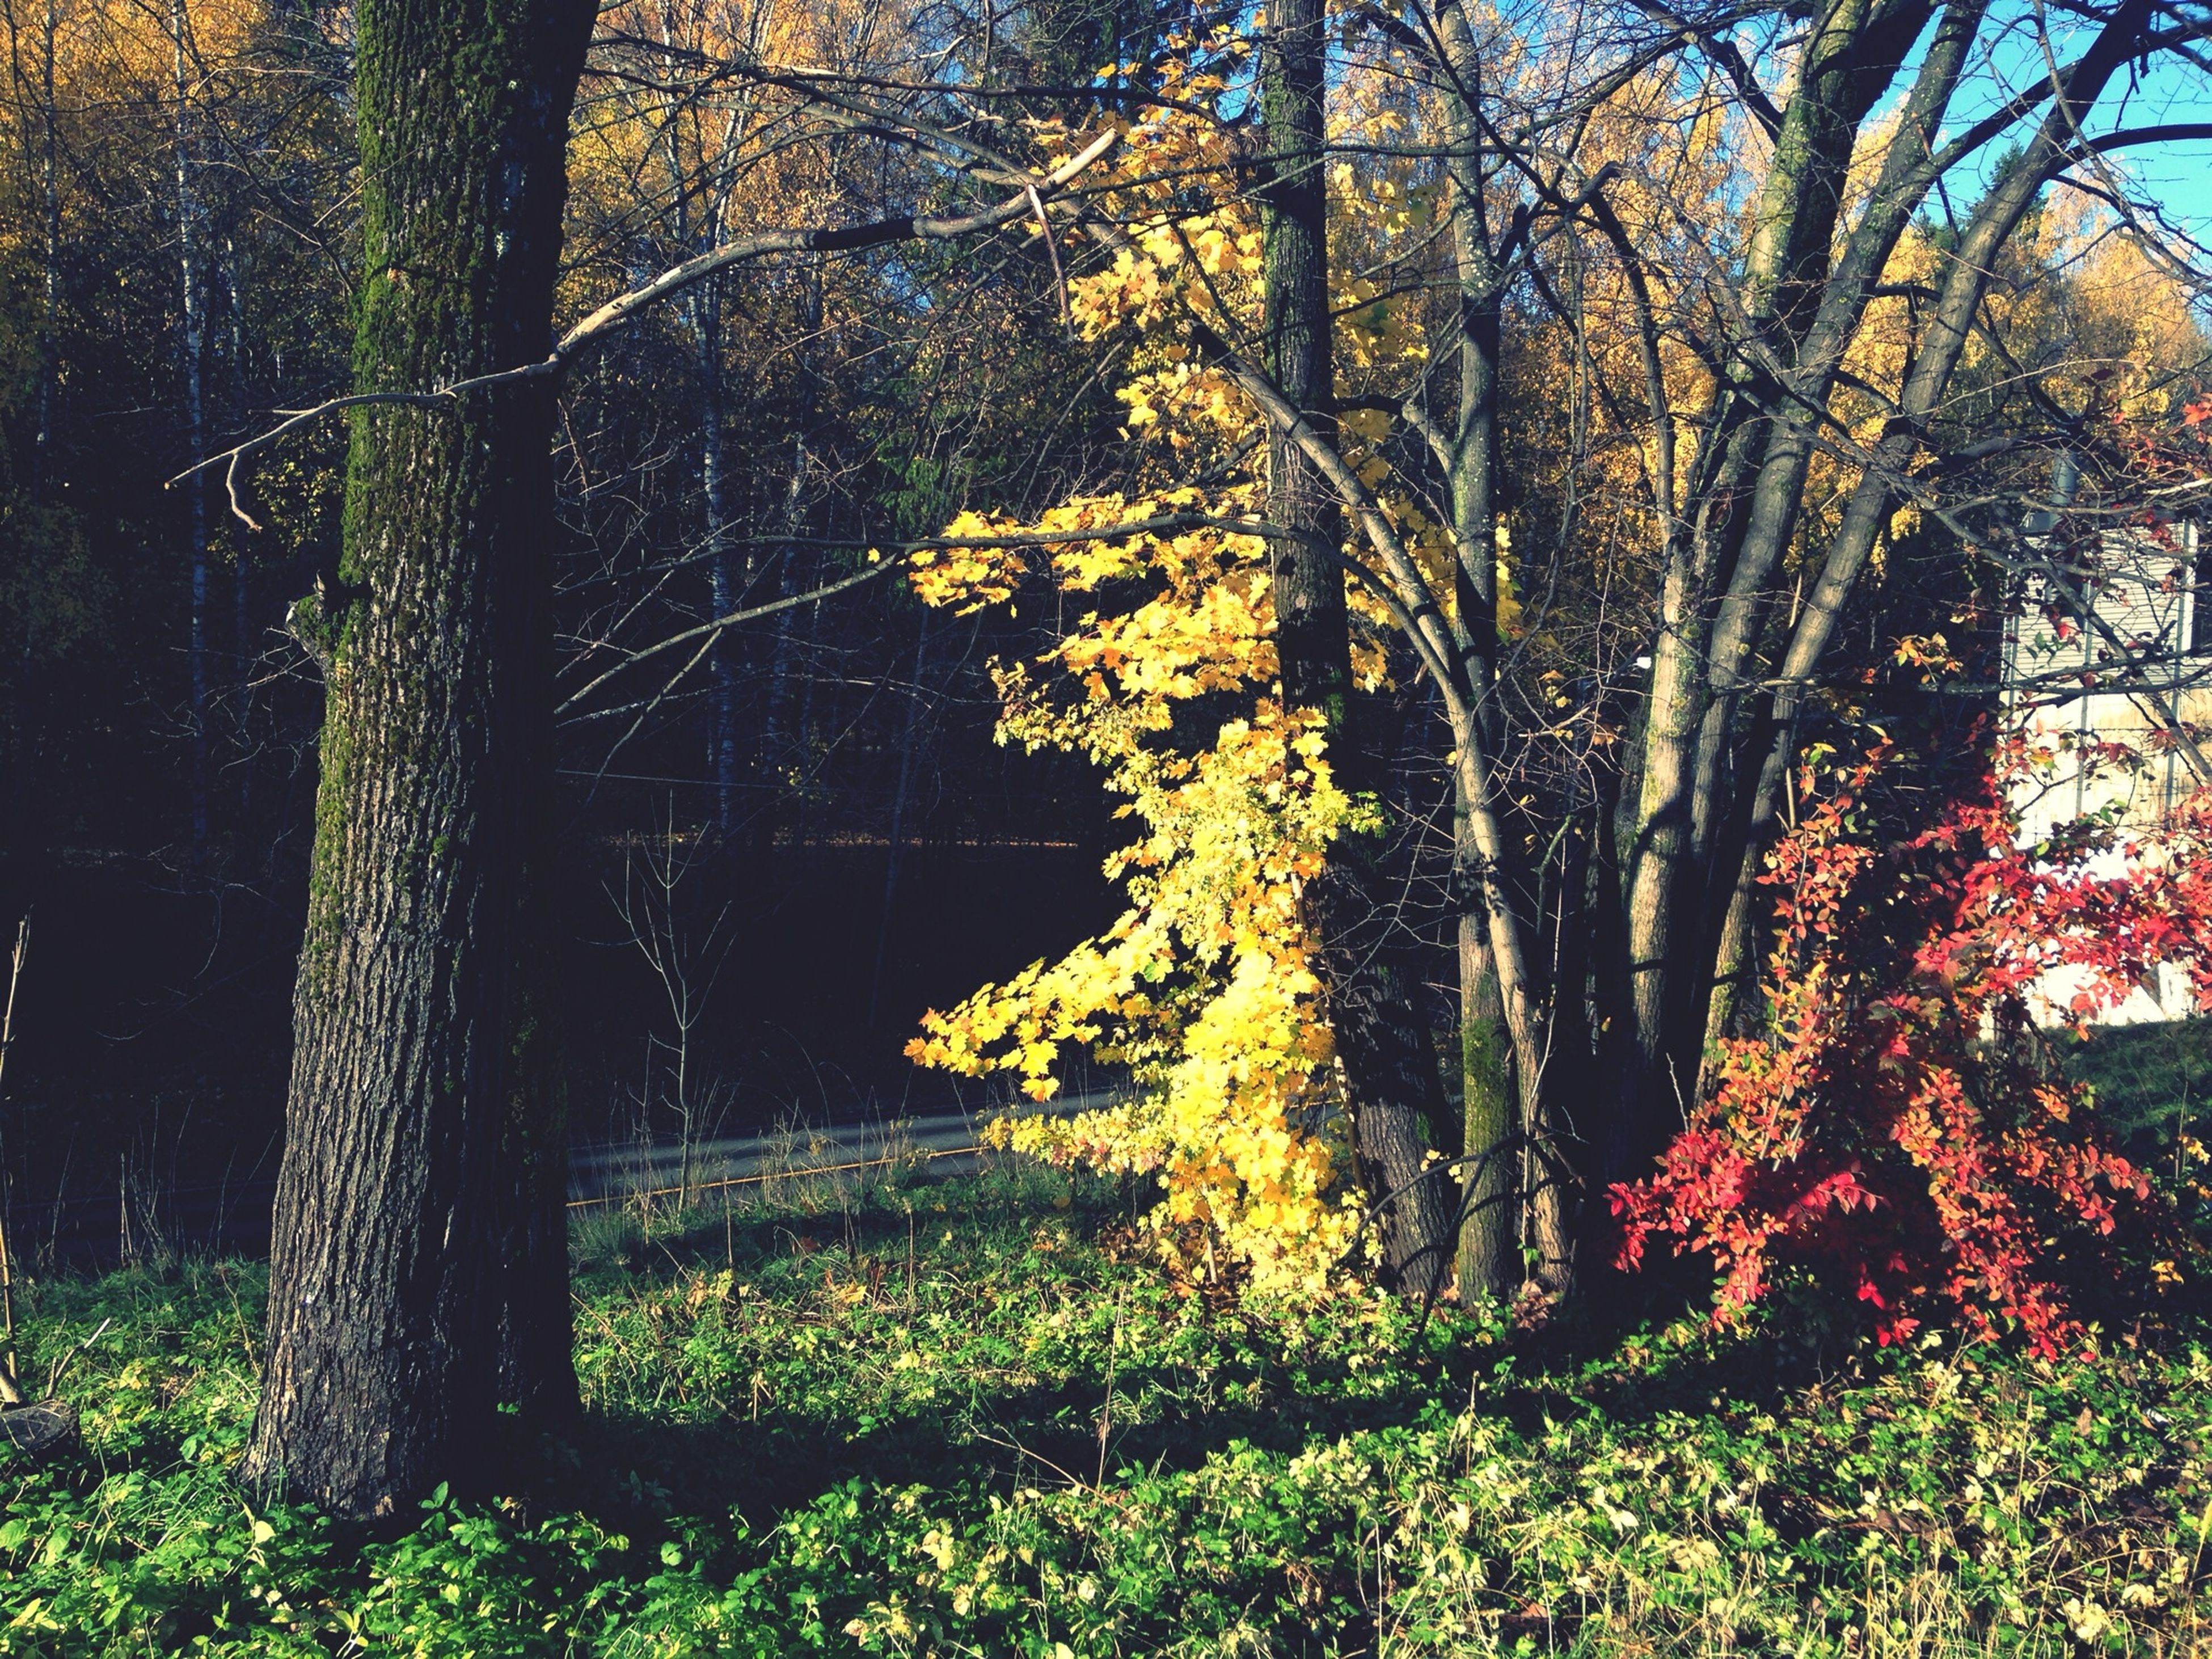 tree, growth, tree trunk, tranquility, nature, beauty in nature, branch, tranquil scene, plant, yellow, field, forest, sunlight, scenics, growing, outdoors, no people, flower, day, season